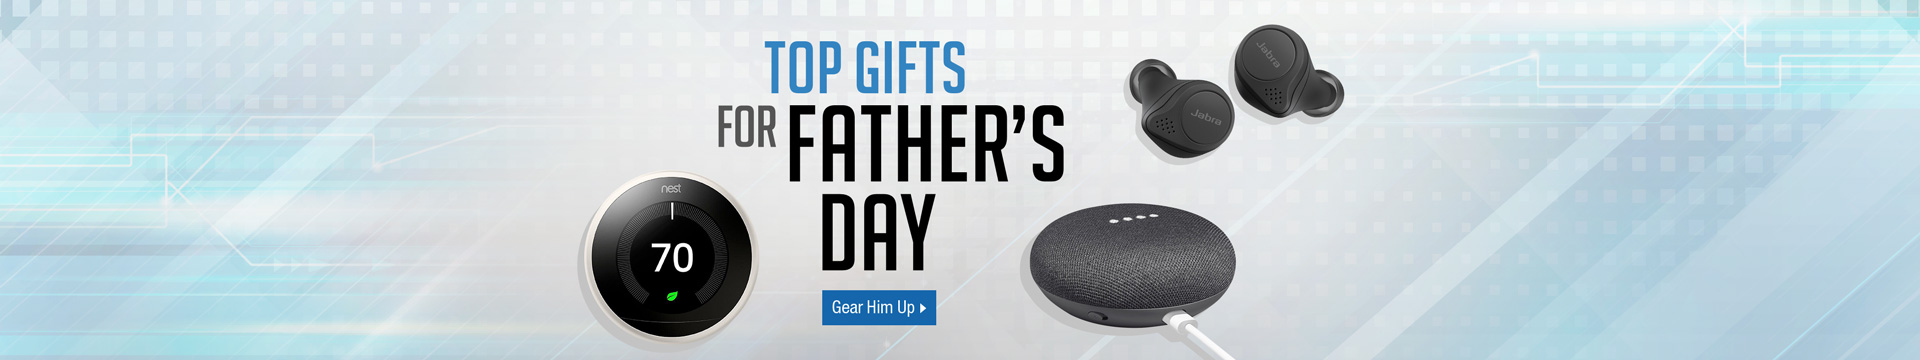 Top Gifts for Father's Day